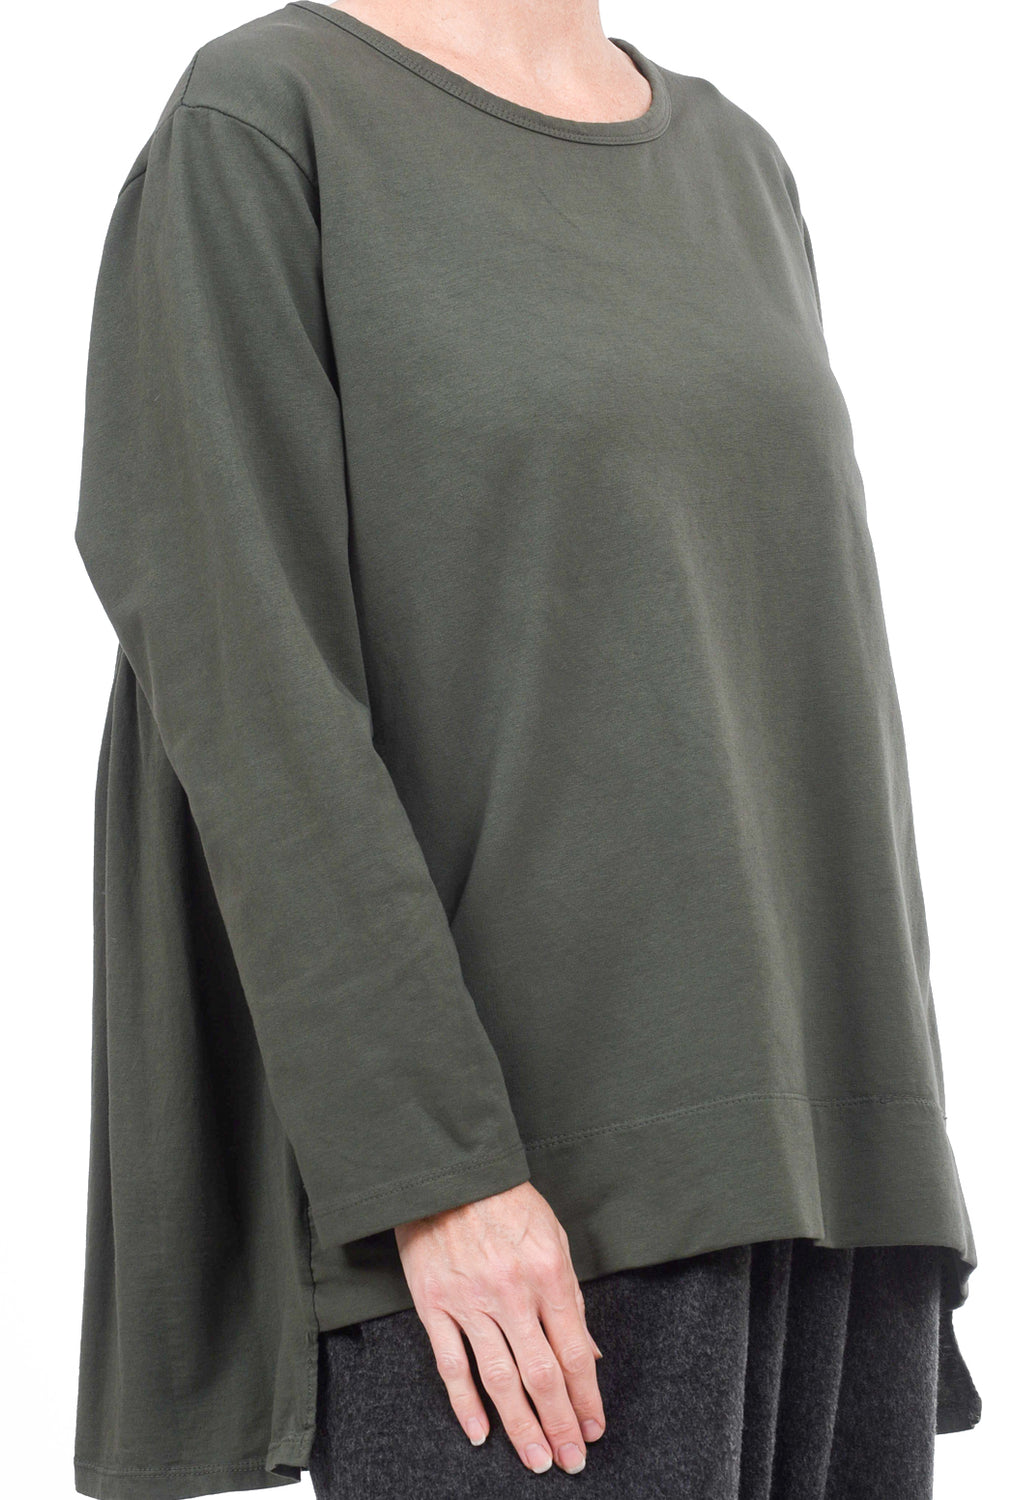 Oro Bonito Pleat-Back Jersey Pullover, Olive One Size Olive